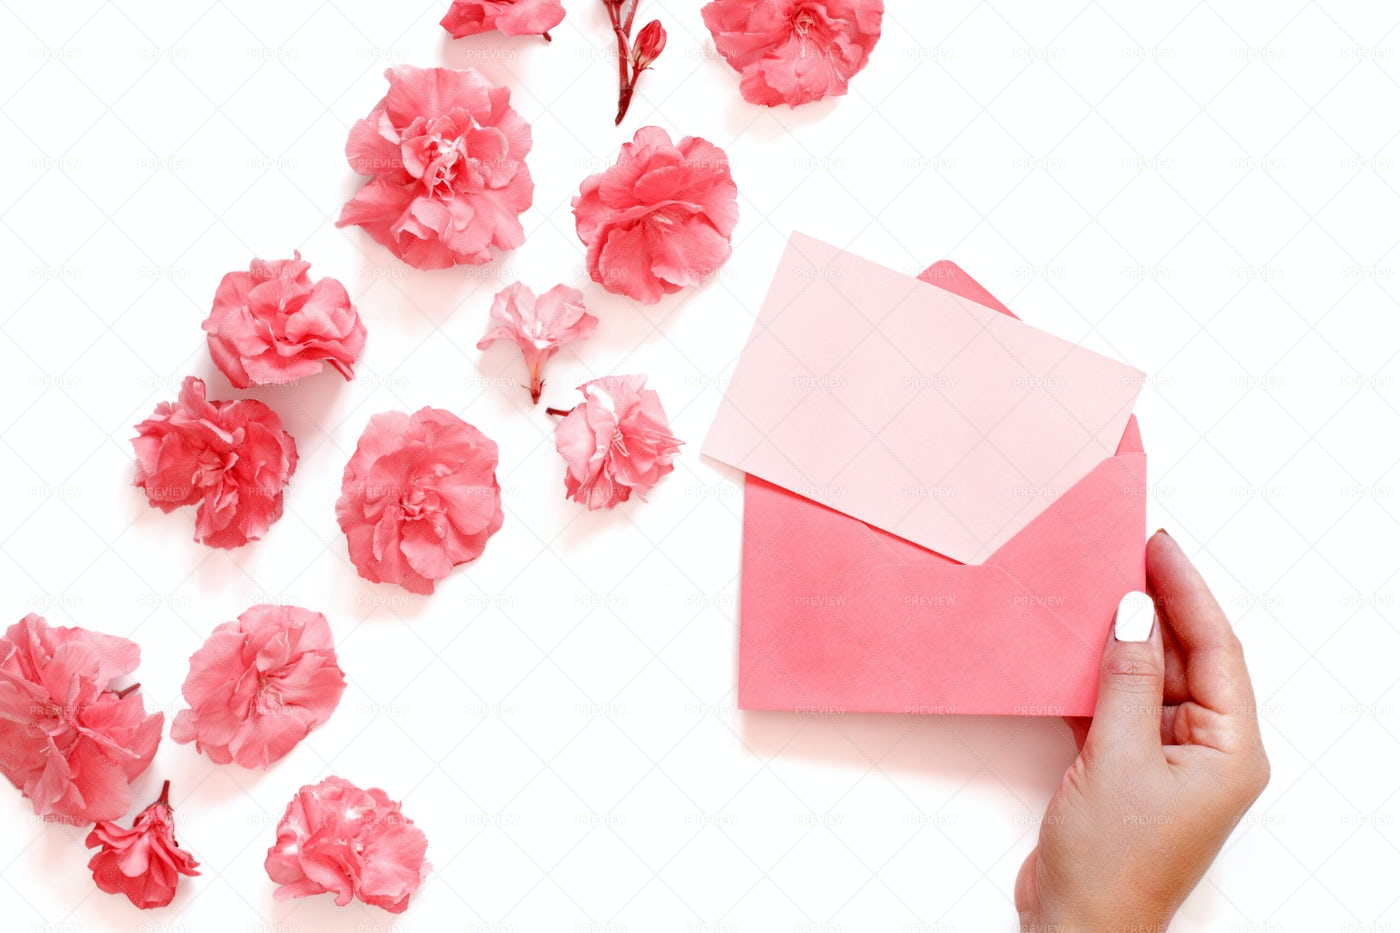 Hand With Pink Envelope: Stock Photos